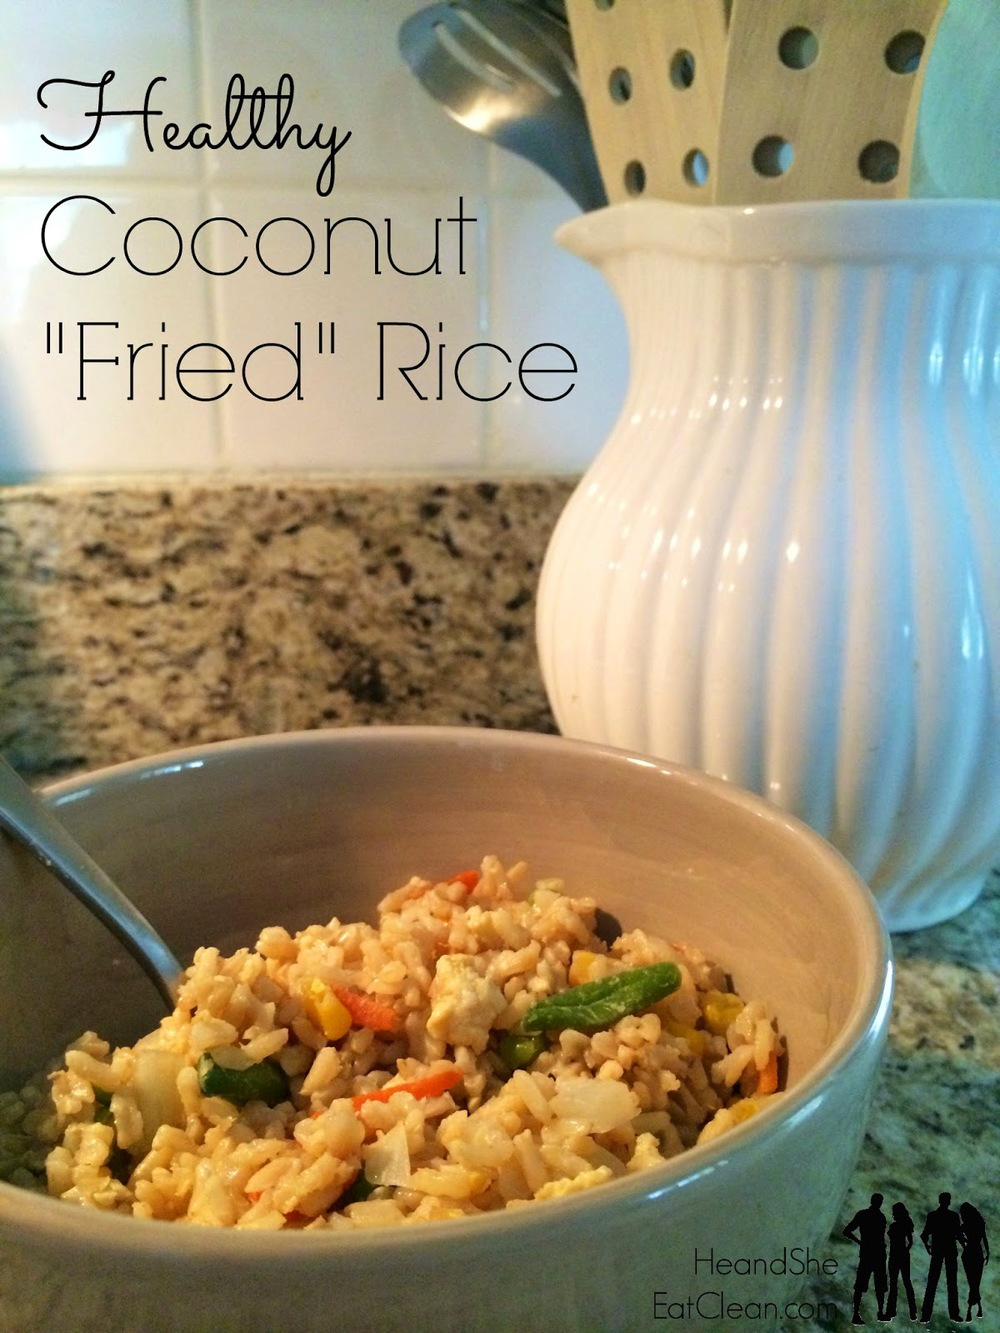 healthy-coconut-fried-rice-he-and-she-eat-clean-healthy-diet-food.jpg